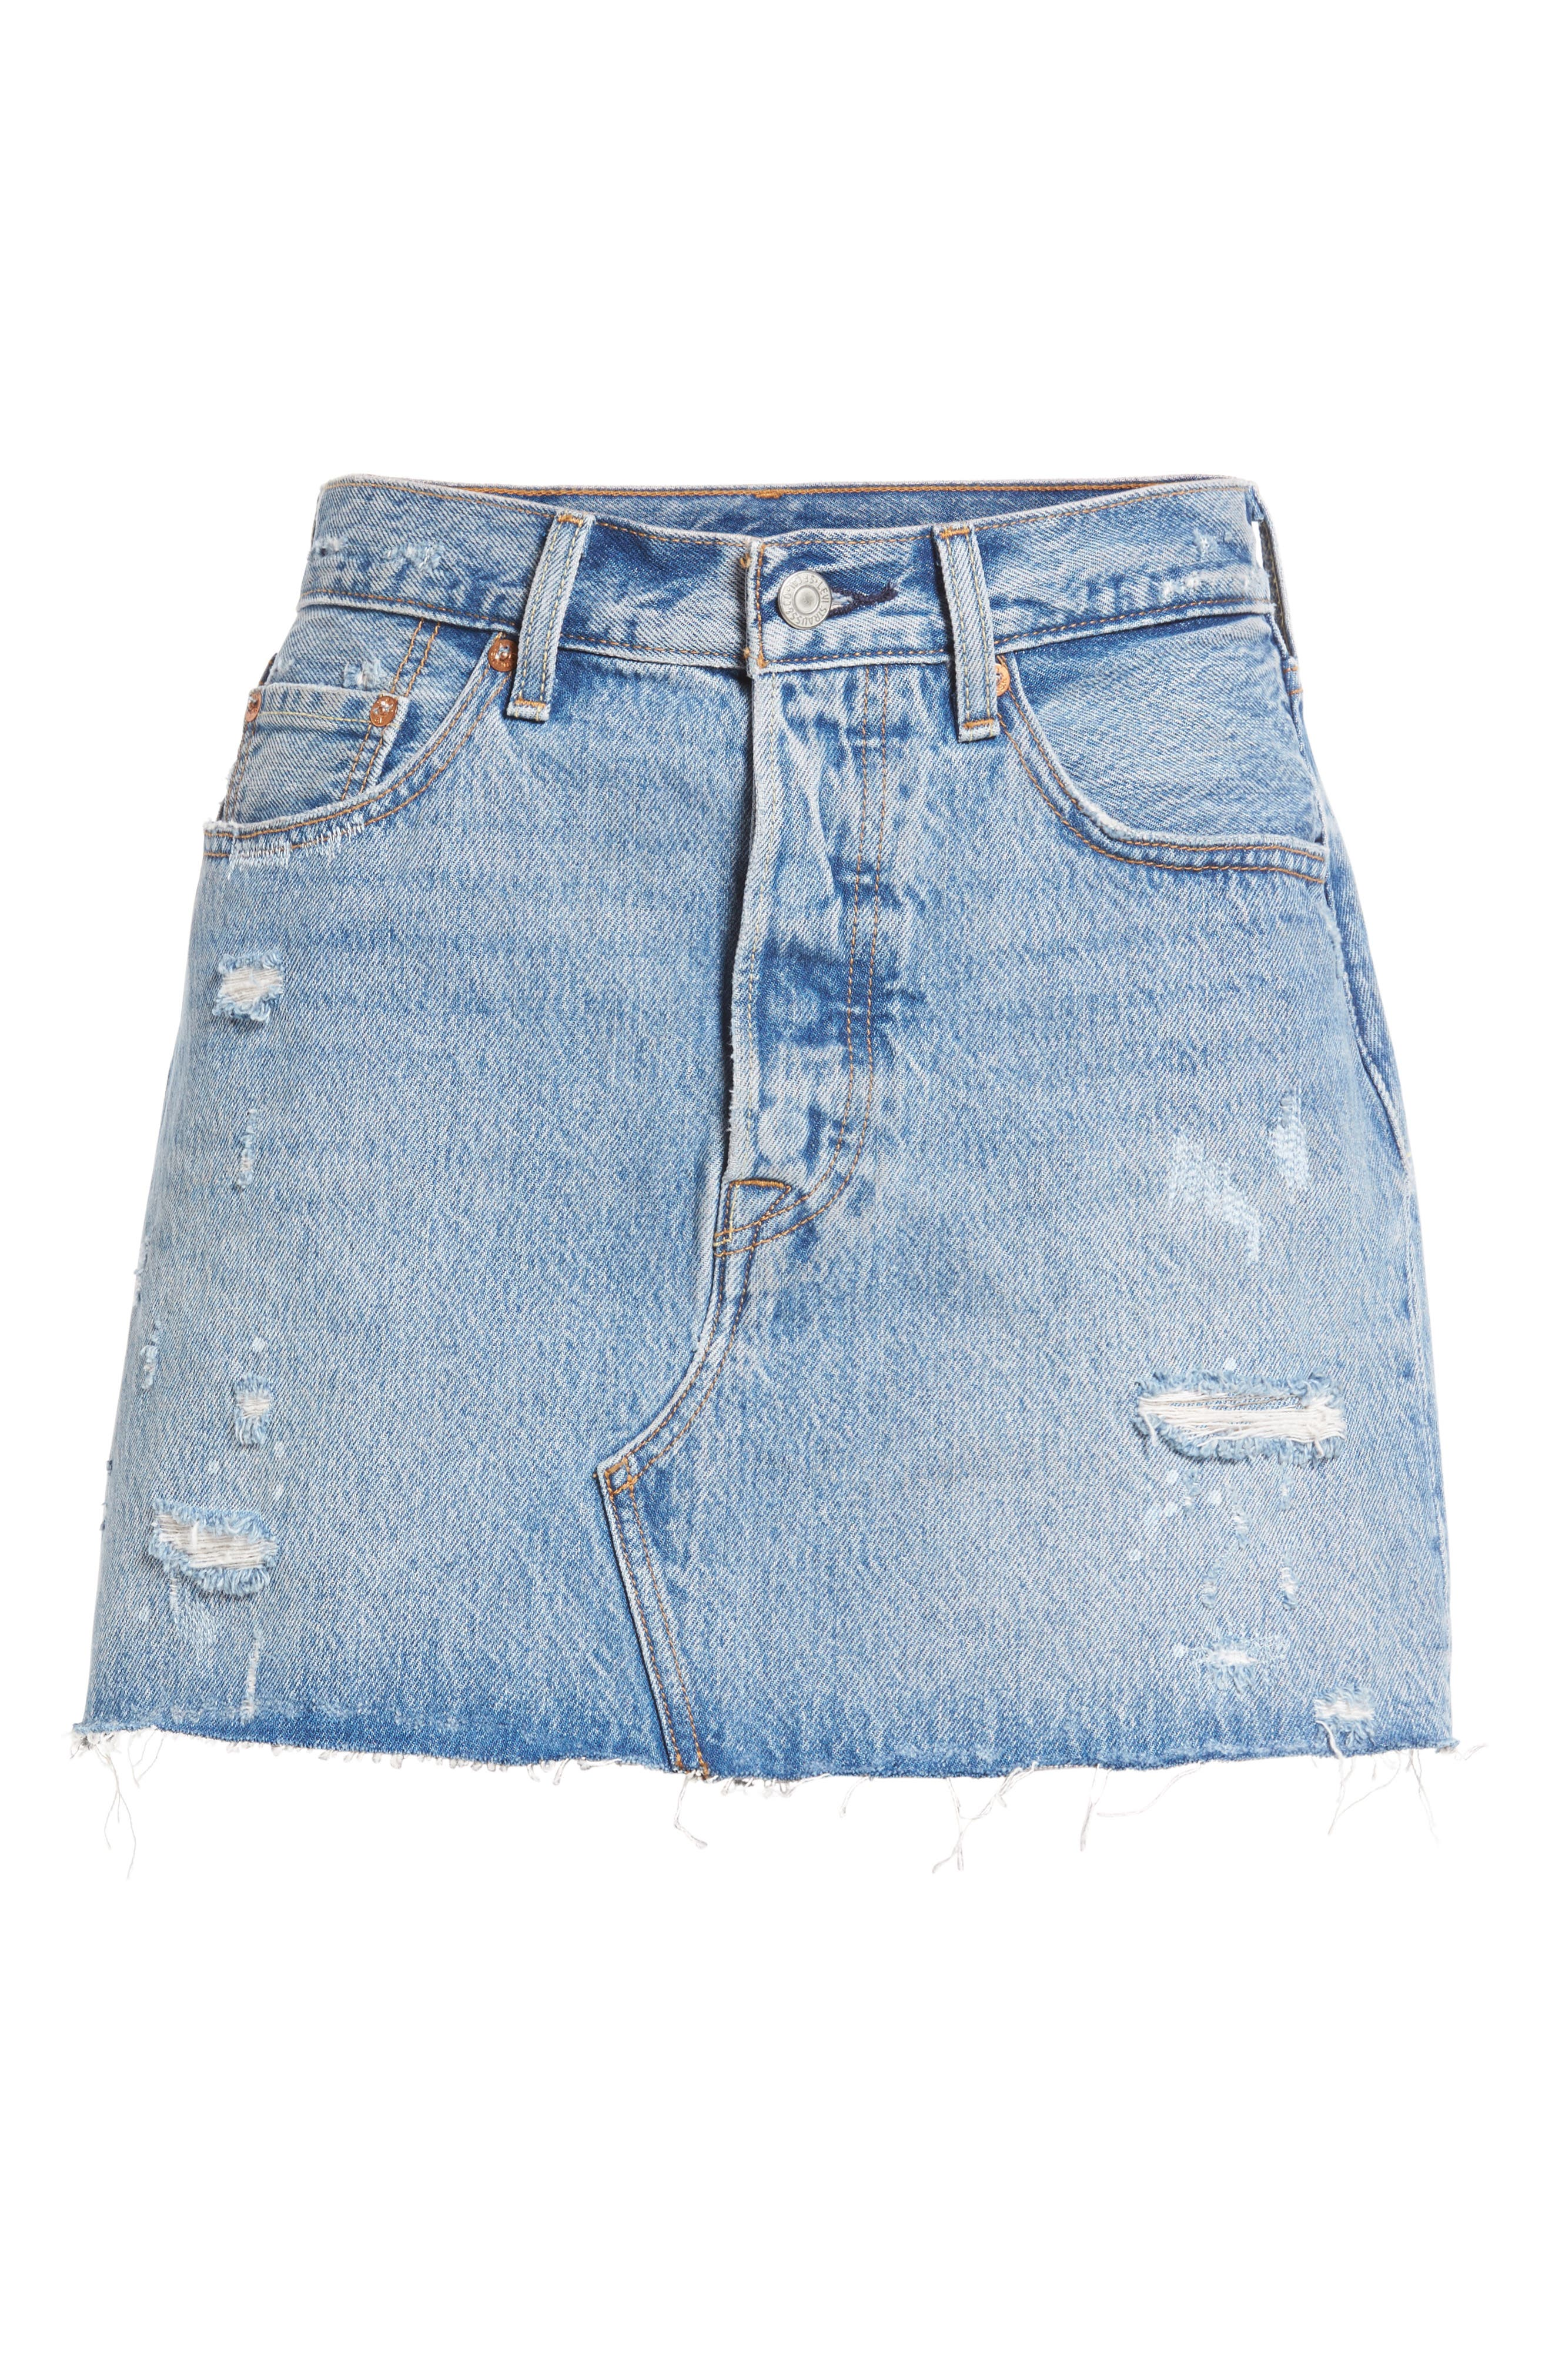 Deconstructed Denim Skirt,                             Alternate thumbnail 6, color,                             420